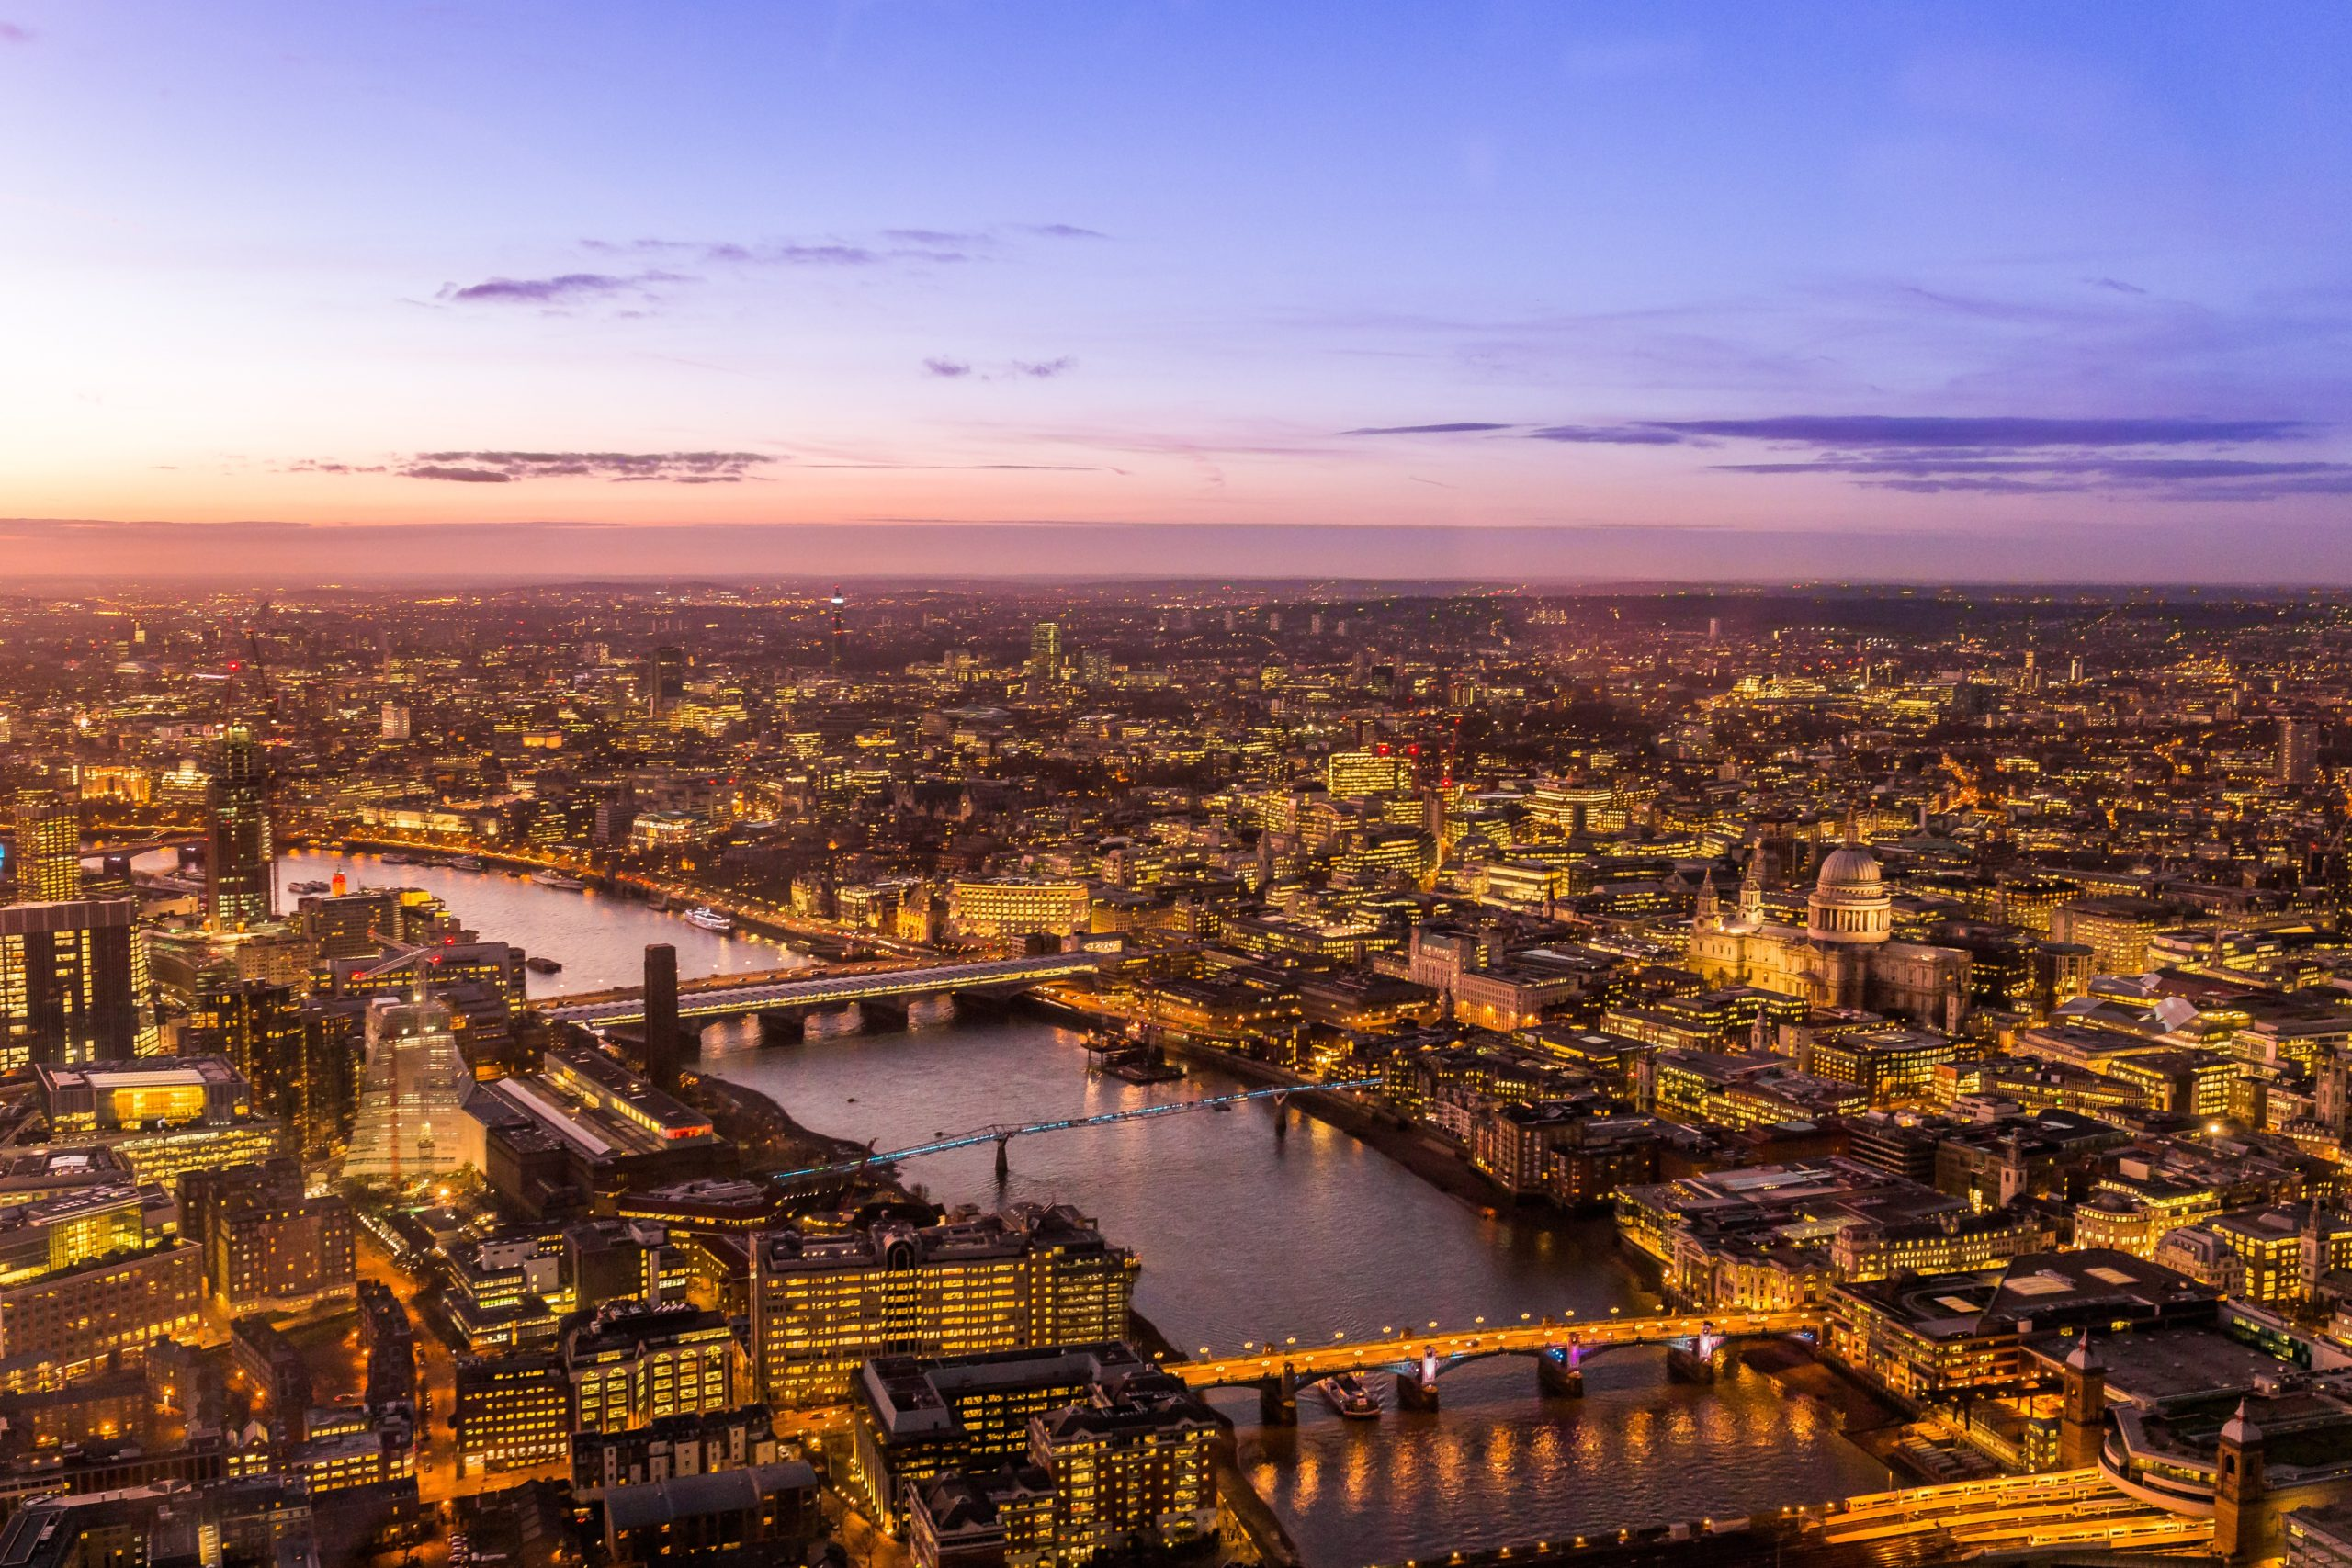 Overhead shot of London skyline with River Thames at sunset